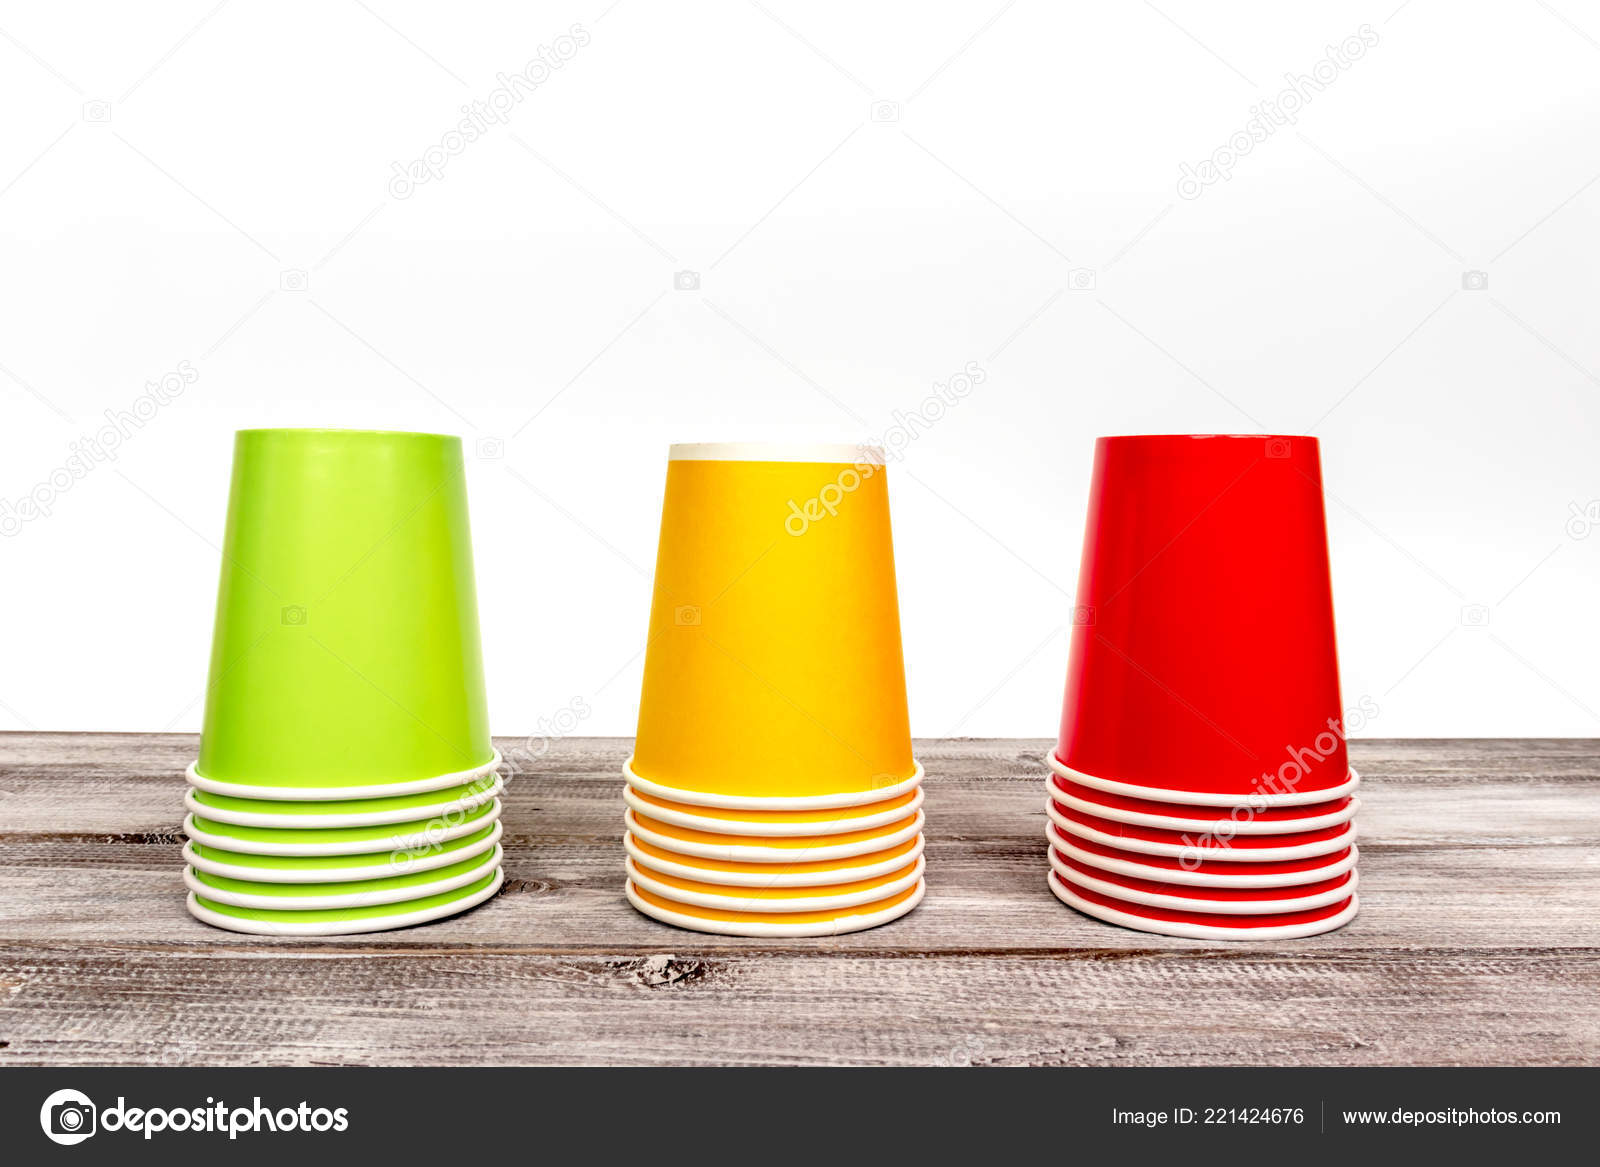 Stacks Empty Colorful Disposable Paper Cups Red Yellow Green